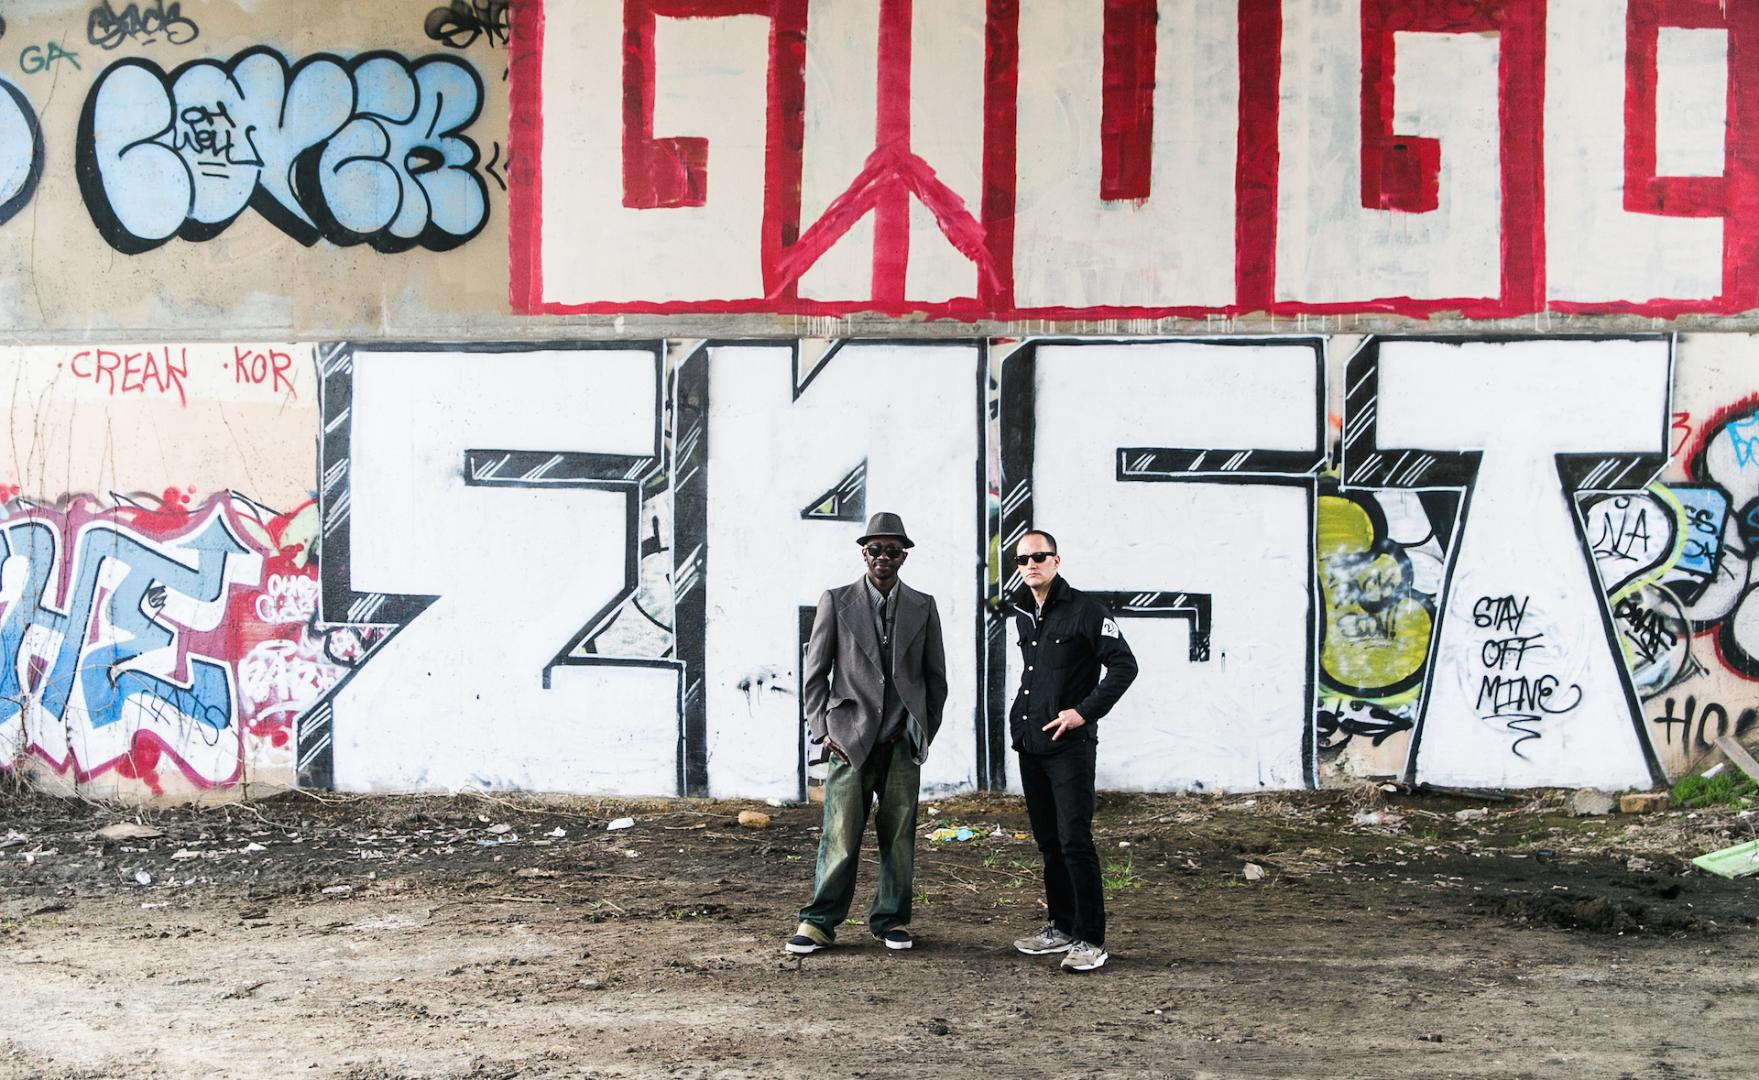 N.Y. landlord obliterated dozens of graffiti murals. Now he owes the artists $6.75 million.